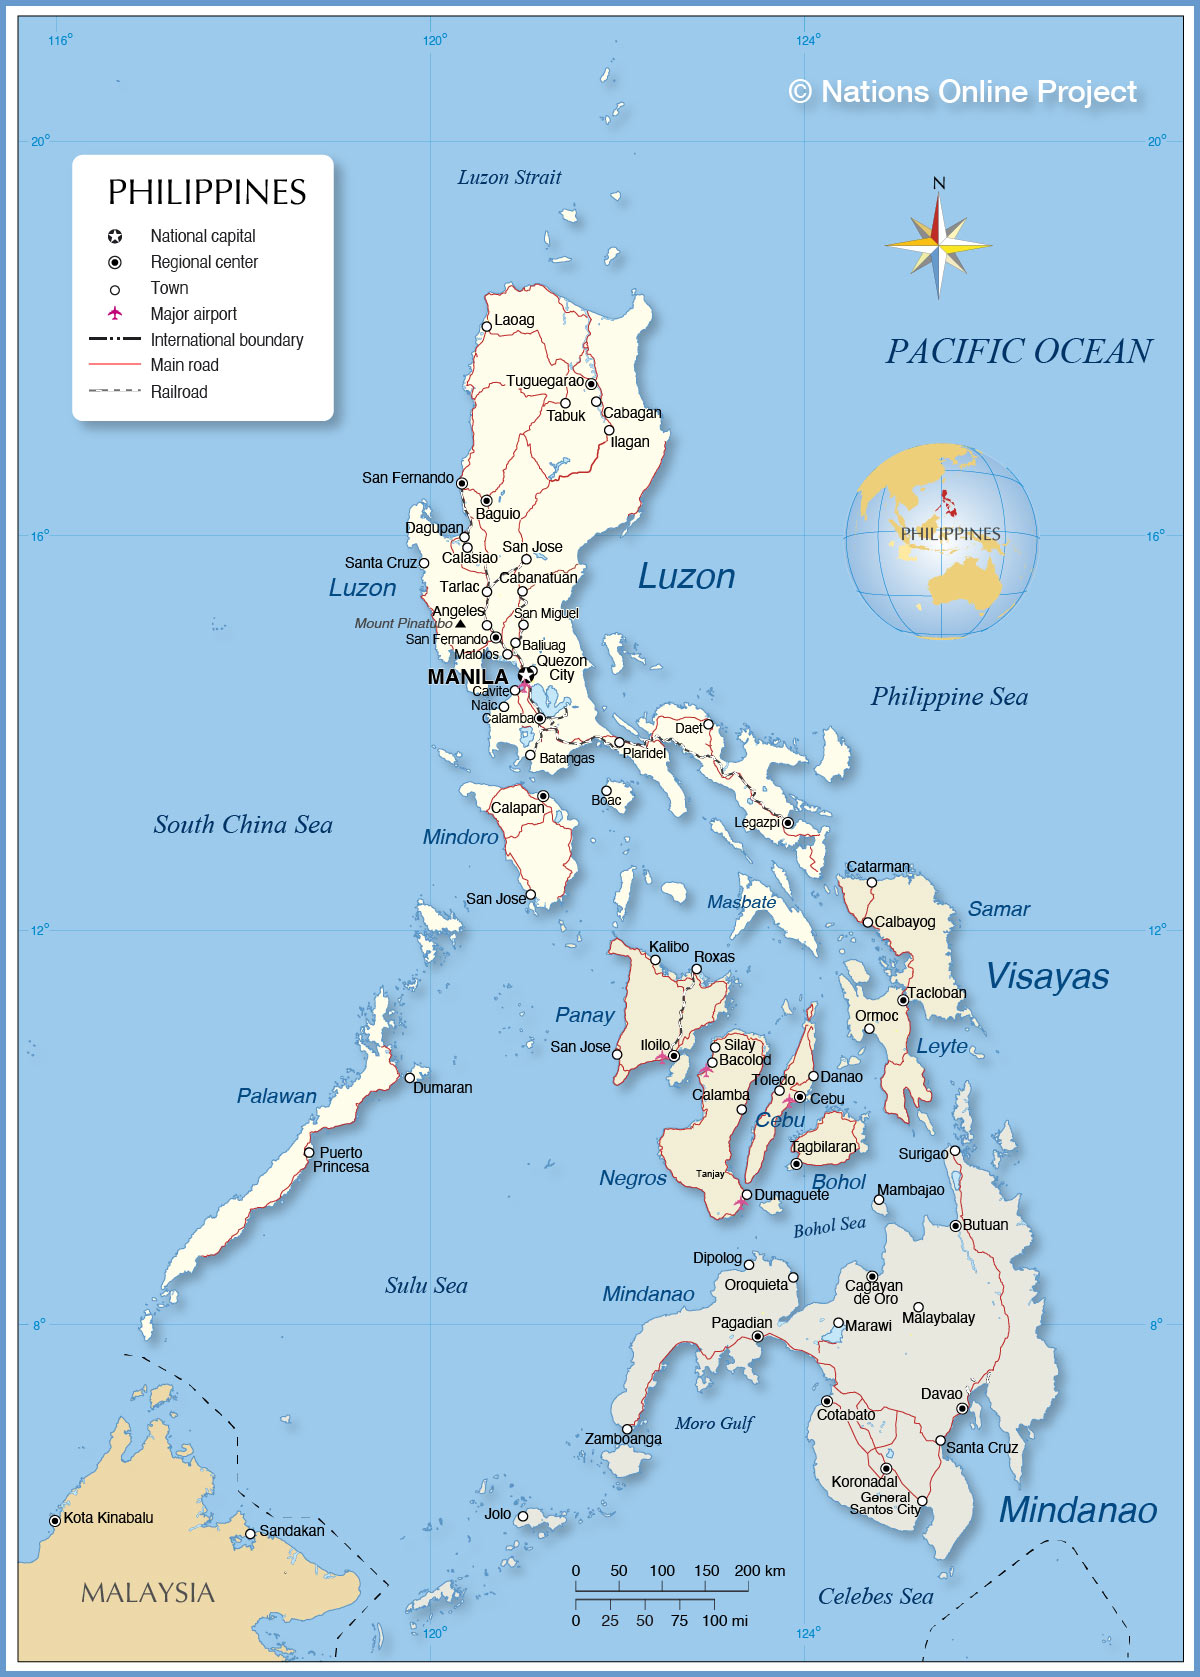 Philippines map, journal of wild culture ©2020